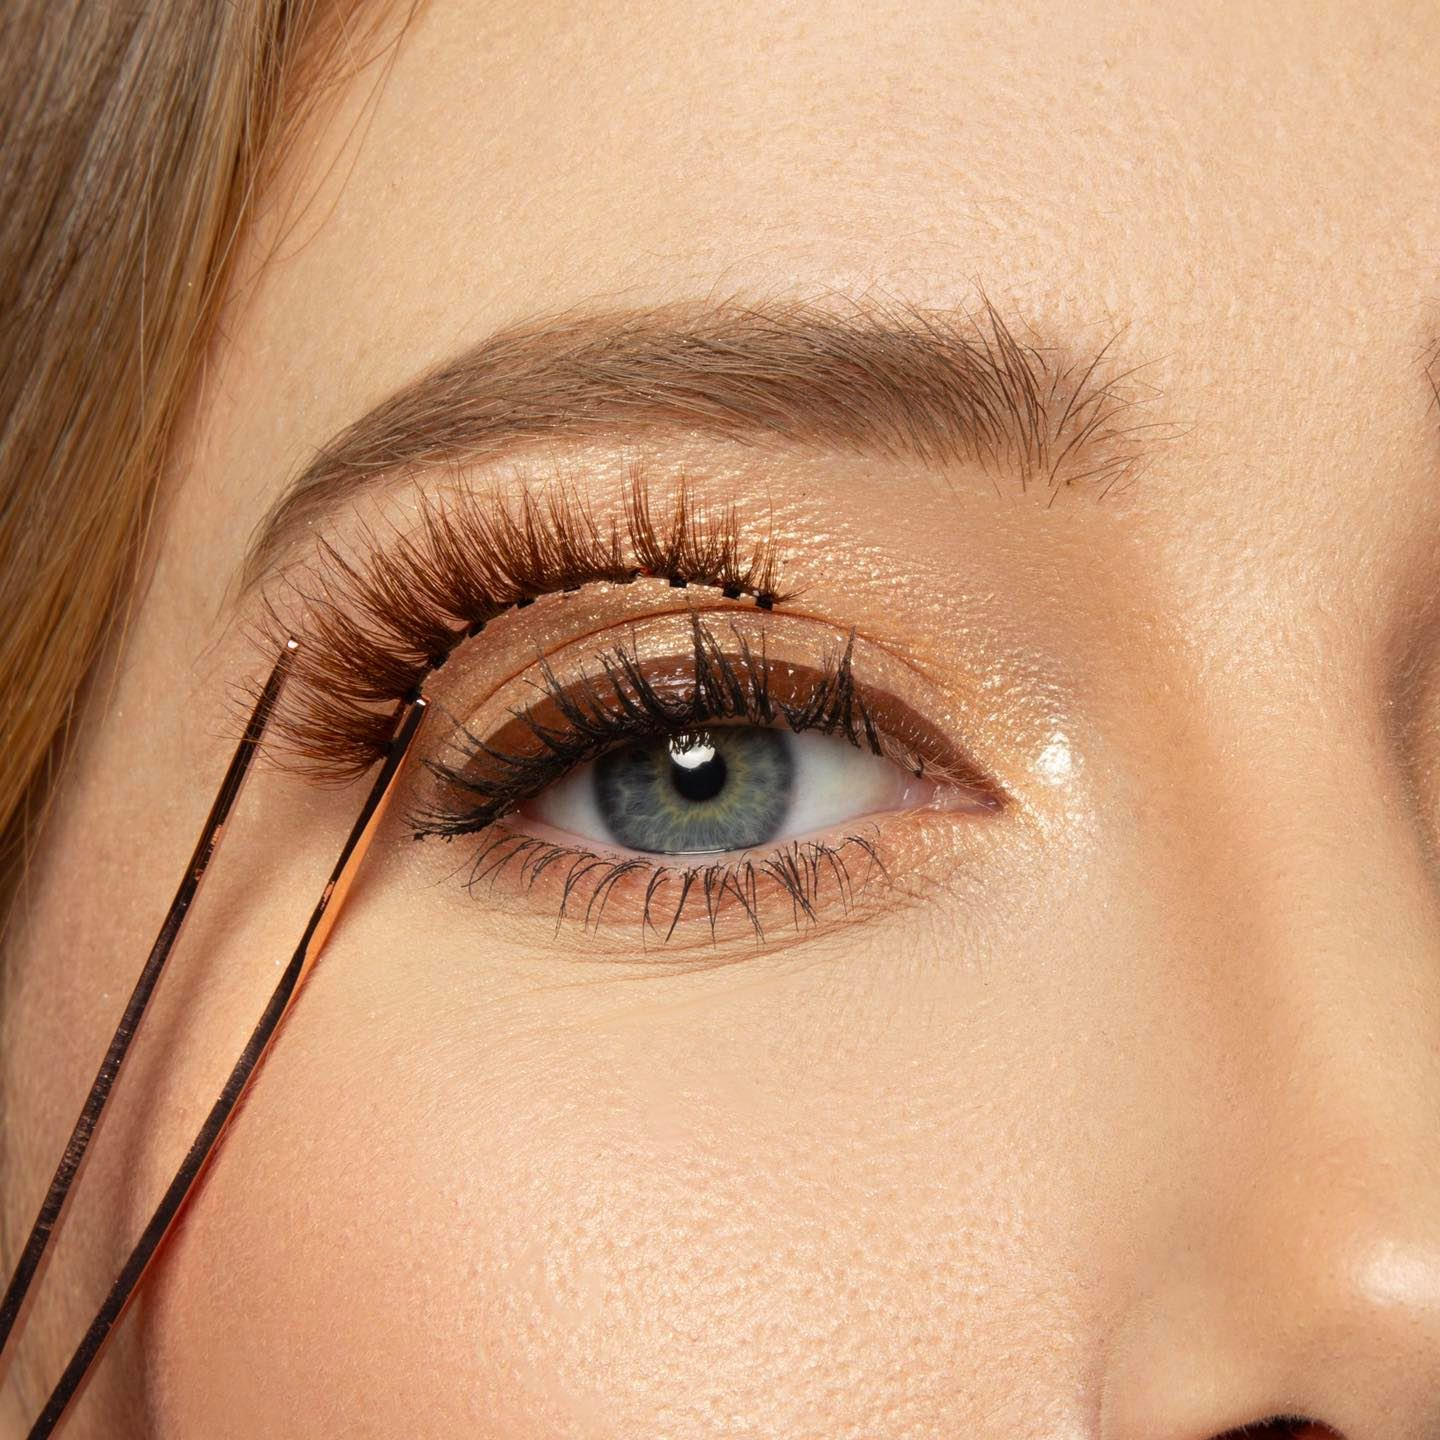 Moxielash Reviews – Magnetic Lashes That Actually Stay in Place?